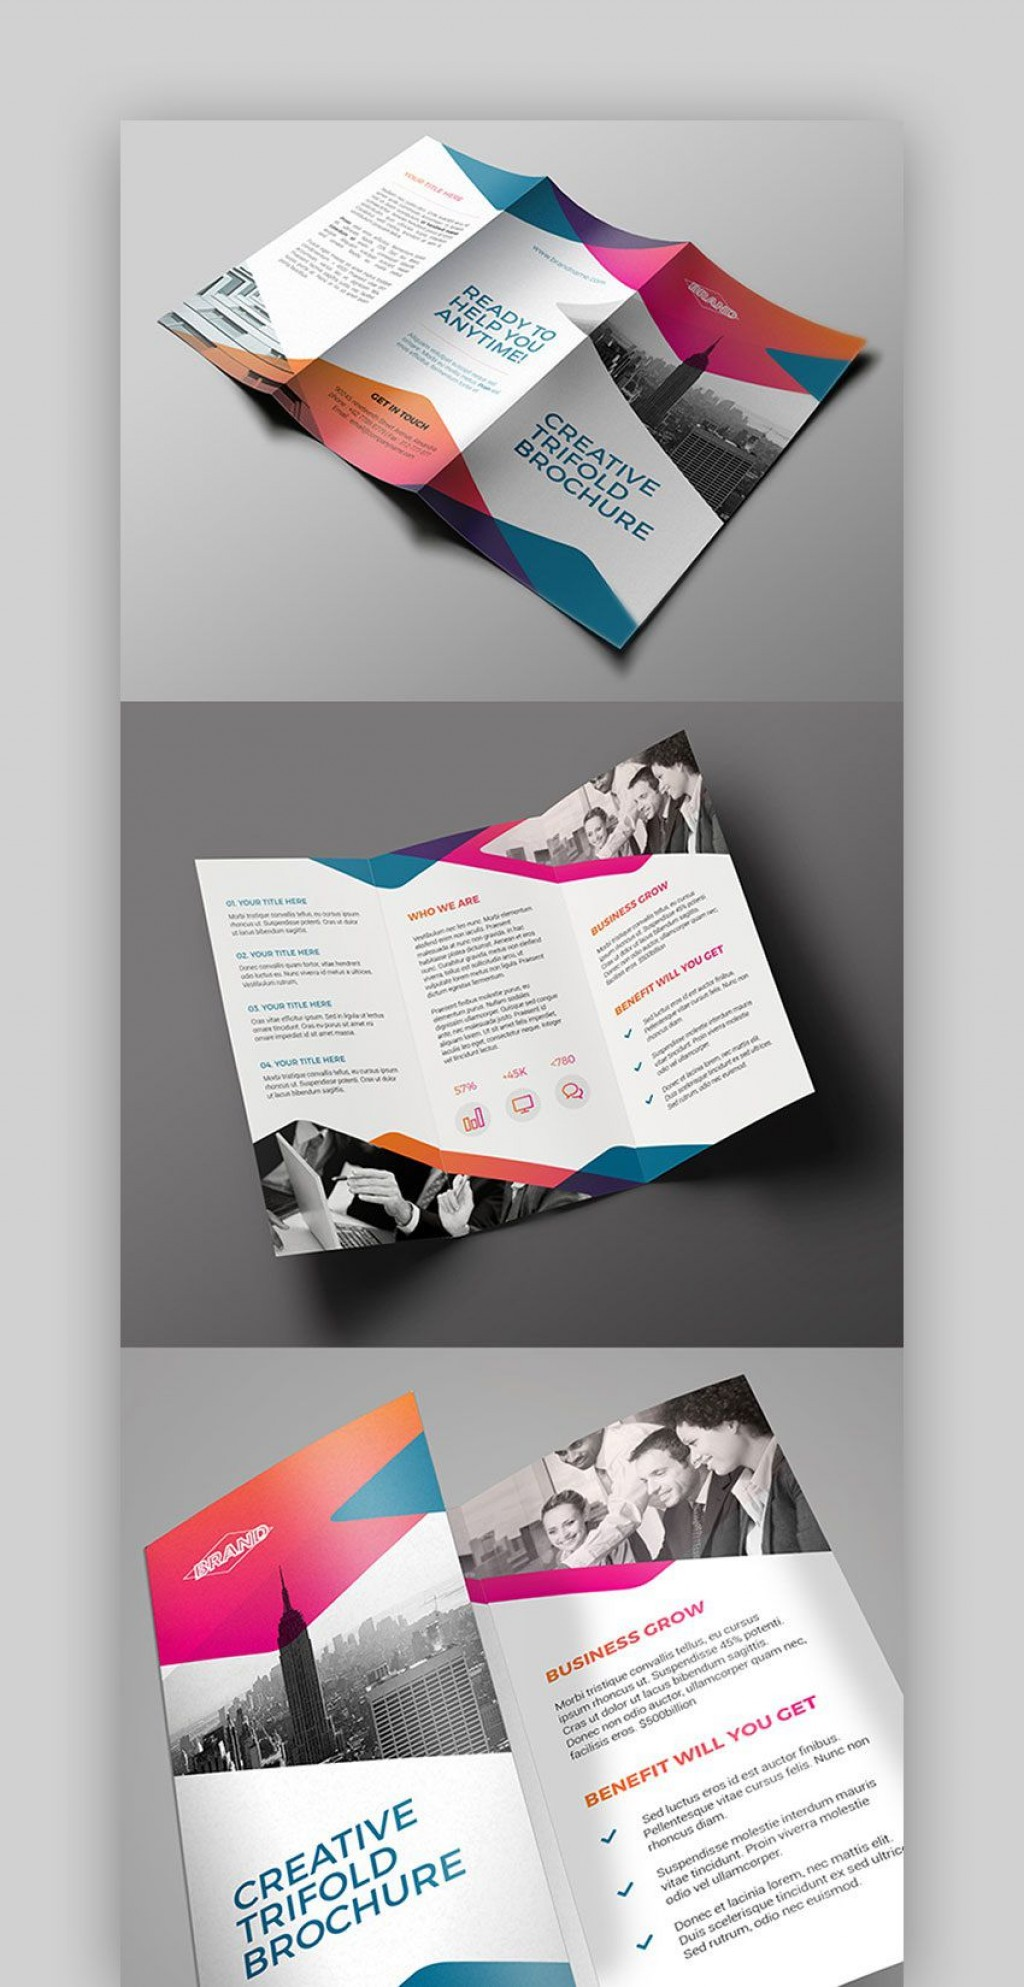 008 Amazing Indesign Trifold Brochure Template Picture  Tri Fold A4 Bi Free DownloadLarge